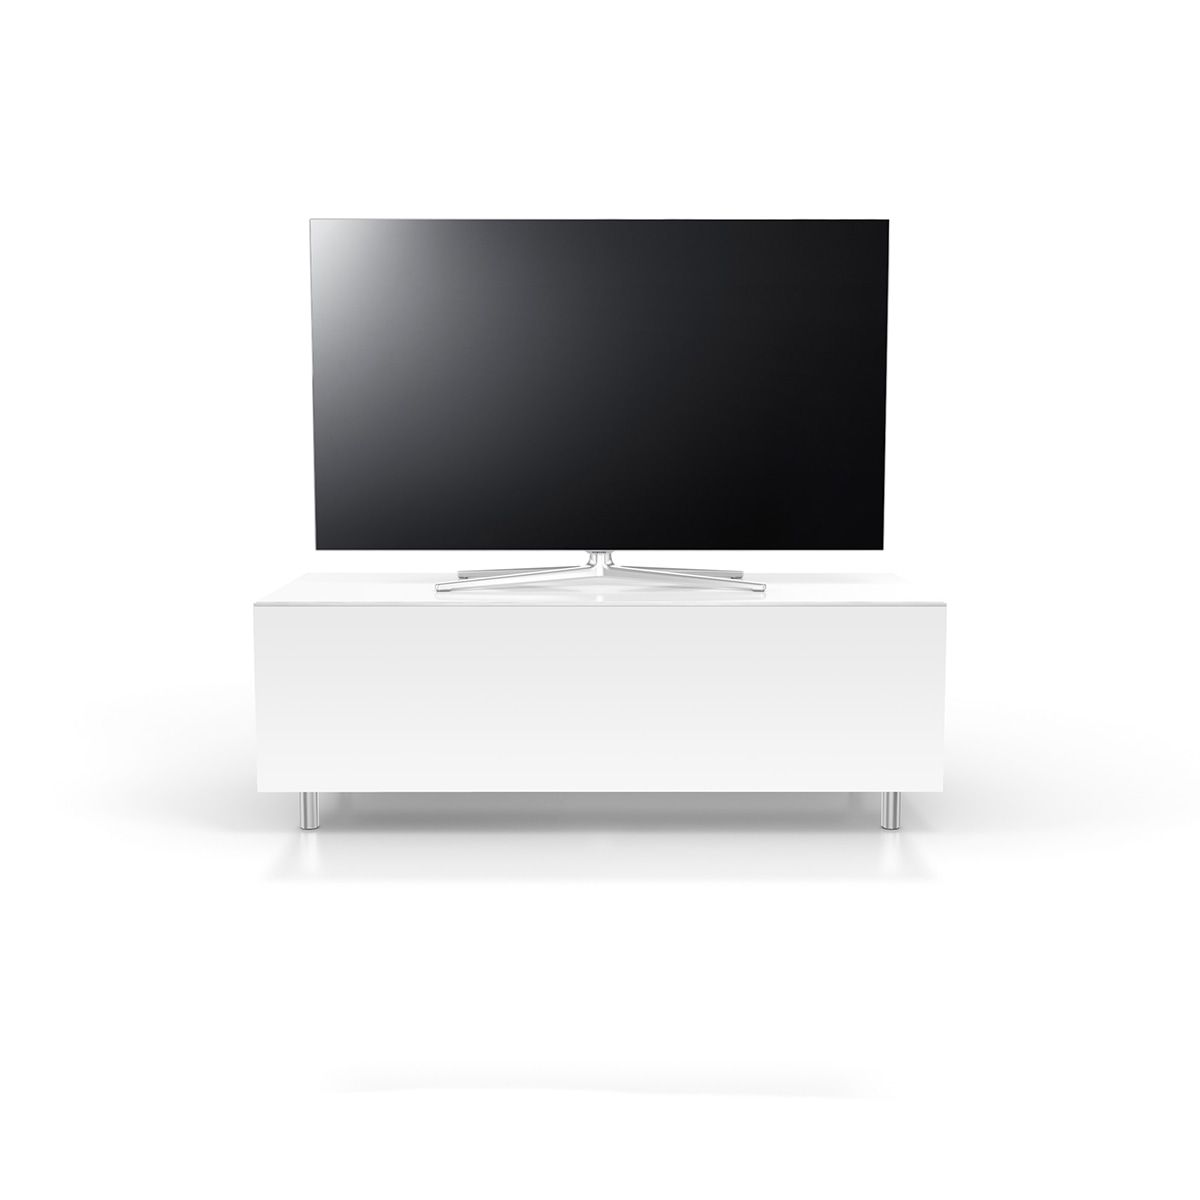 tv meubel 3 meter breed kopen online internetwinkel. Black Bedroom Furniture Sets. Home Design Ideas